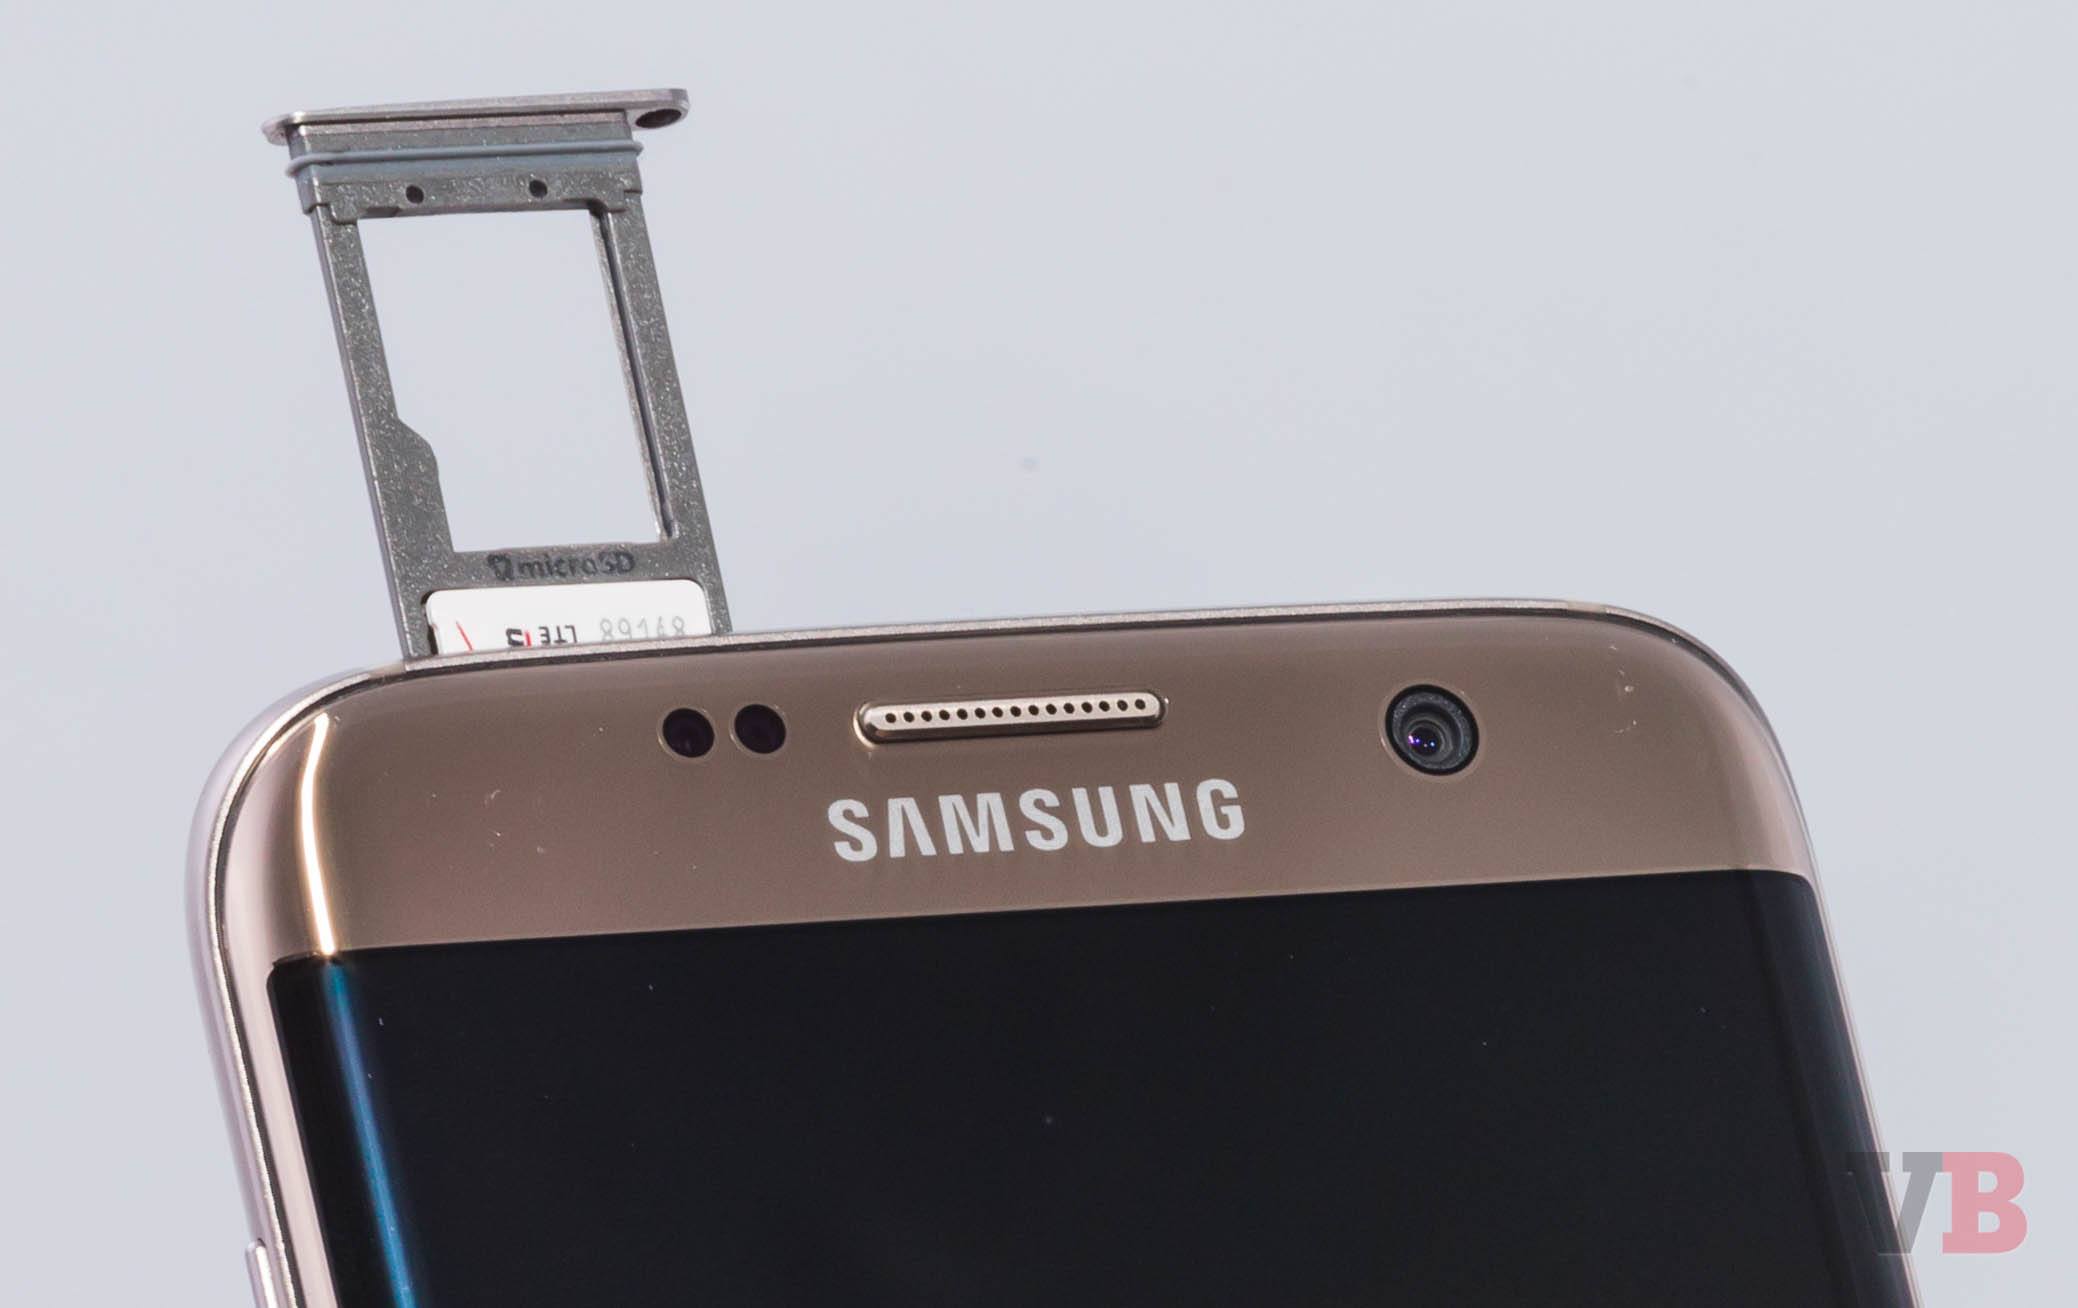 The dual-SIM card slot that's been added to the Samsung Galaxy S7 and S7 edge.